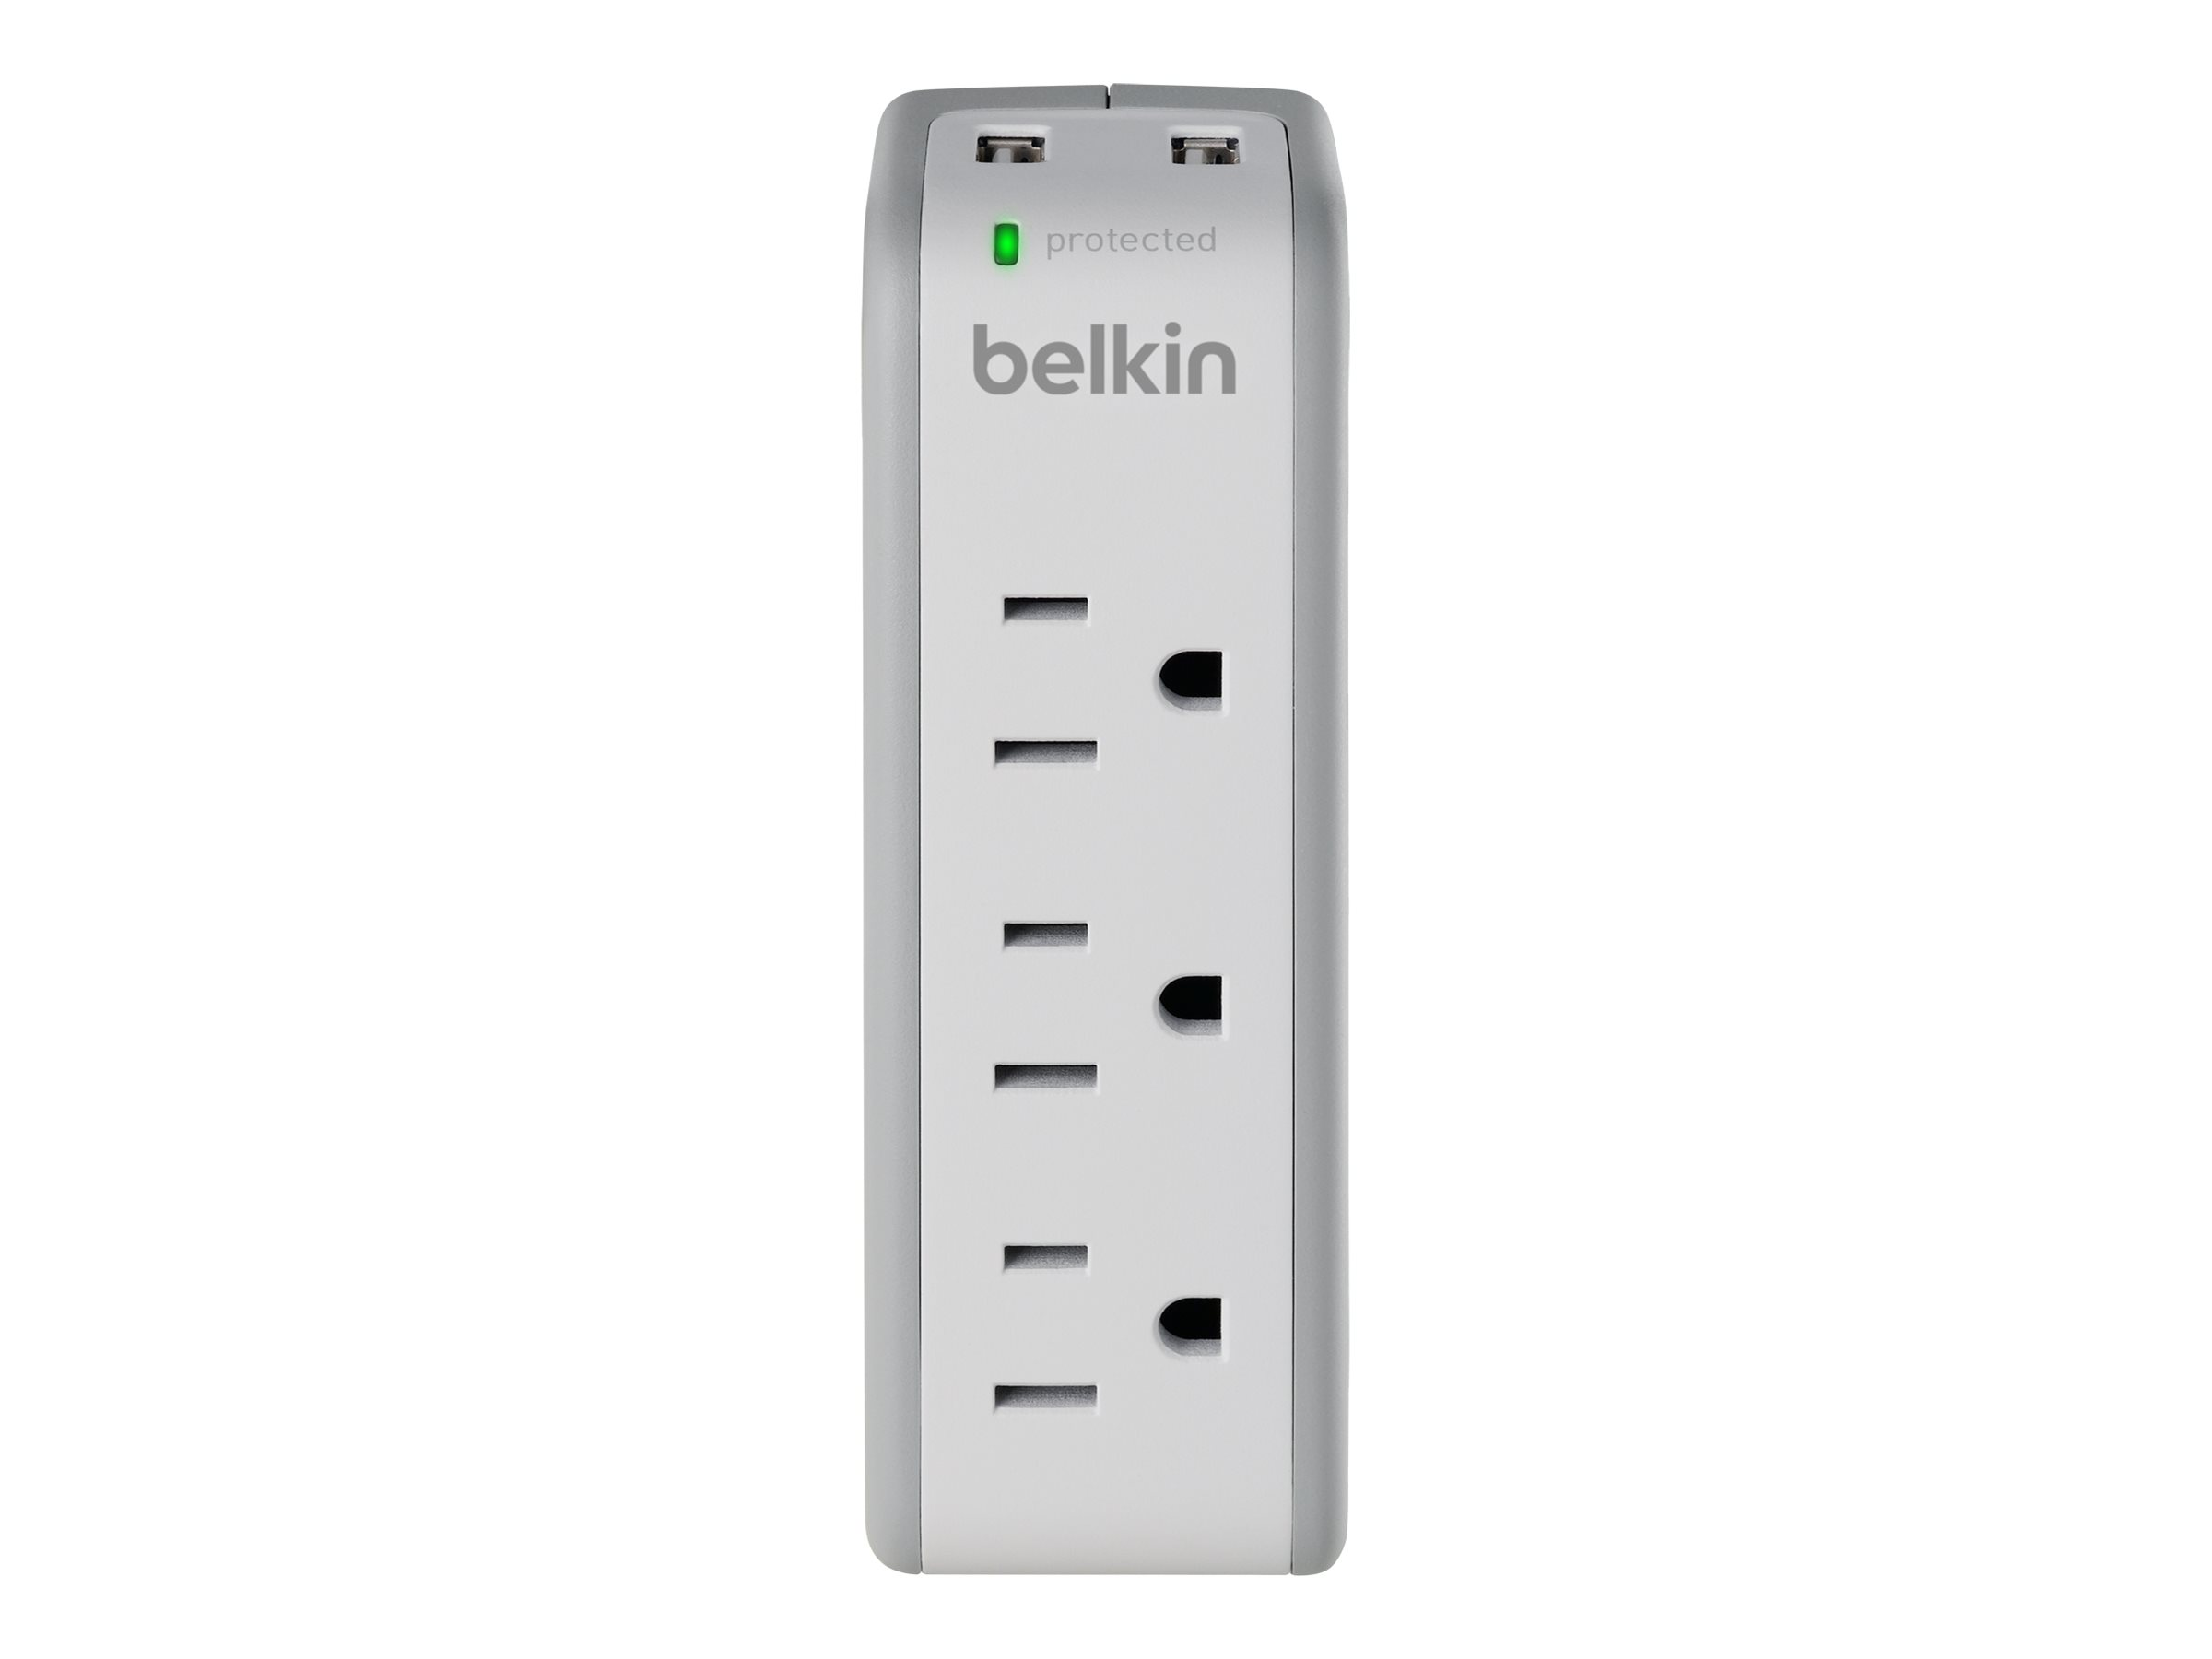 Belkin Mini Surge Protector with USB Charger - surge protector